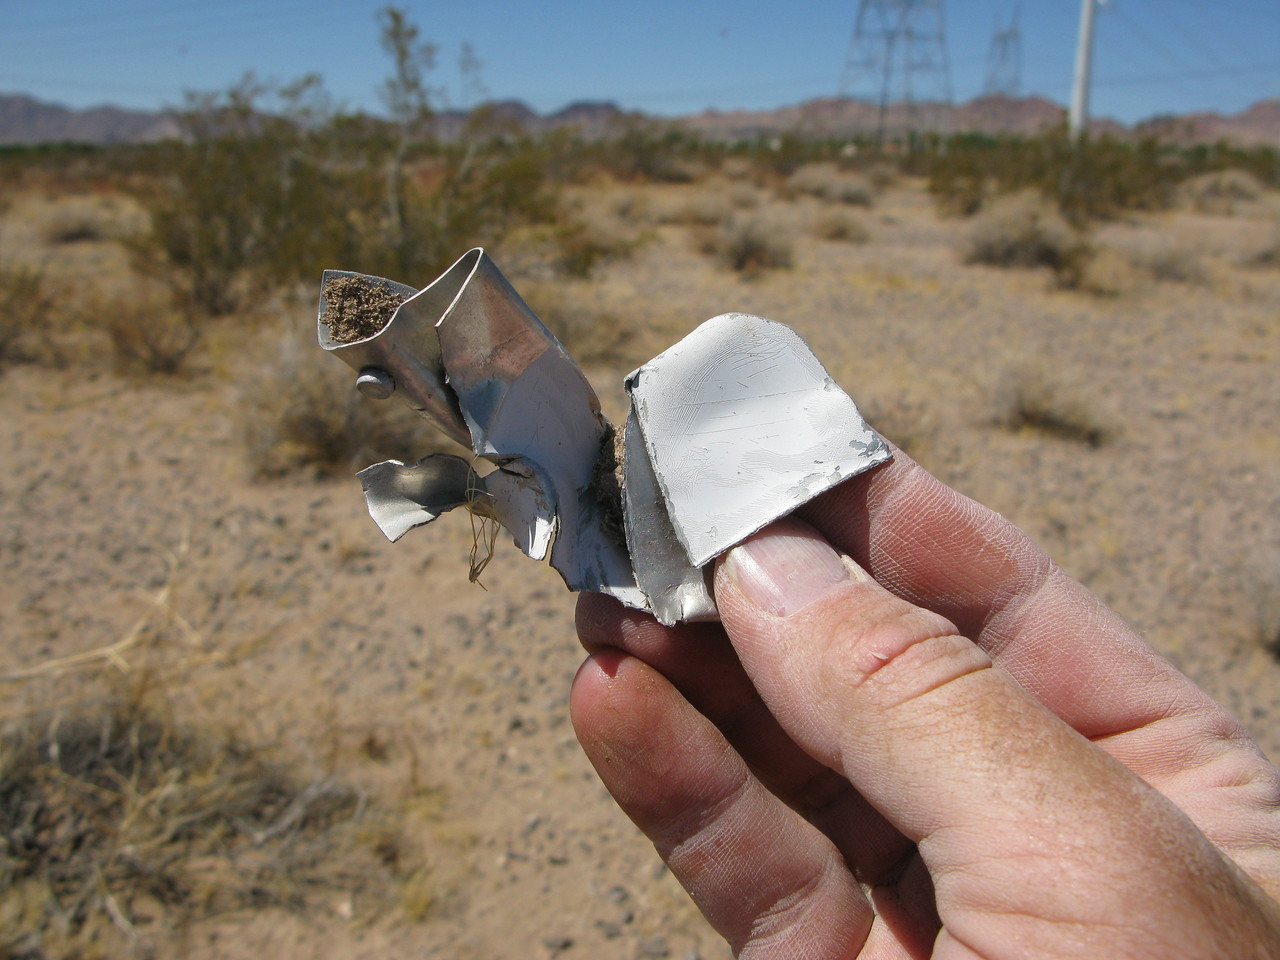 This piece of painted aircraft aluminum was the largest fragment located at the crash site.